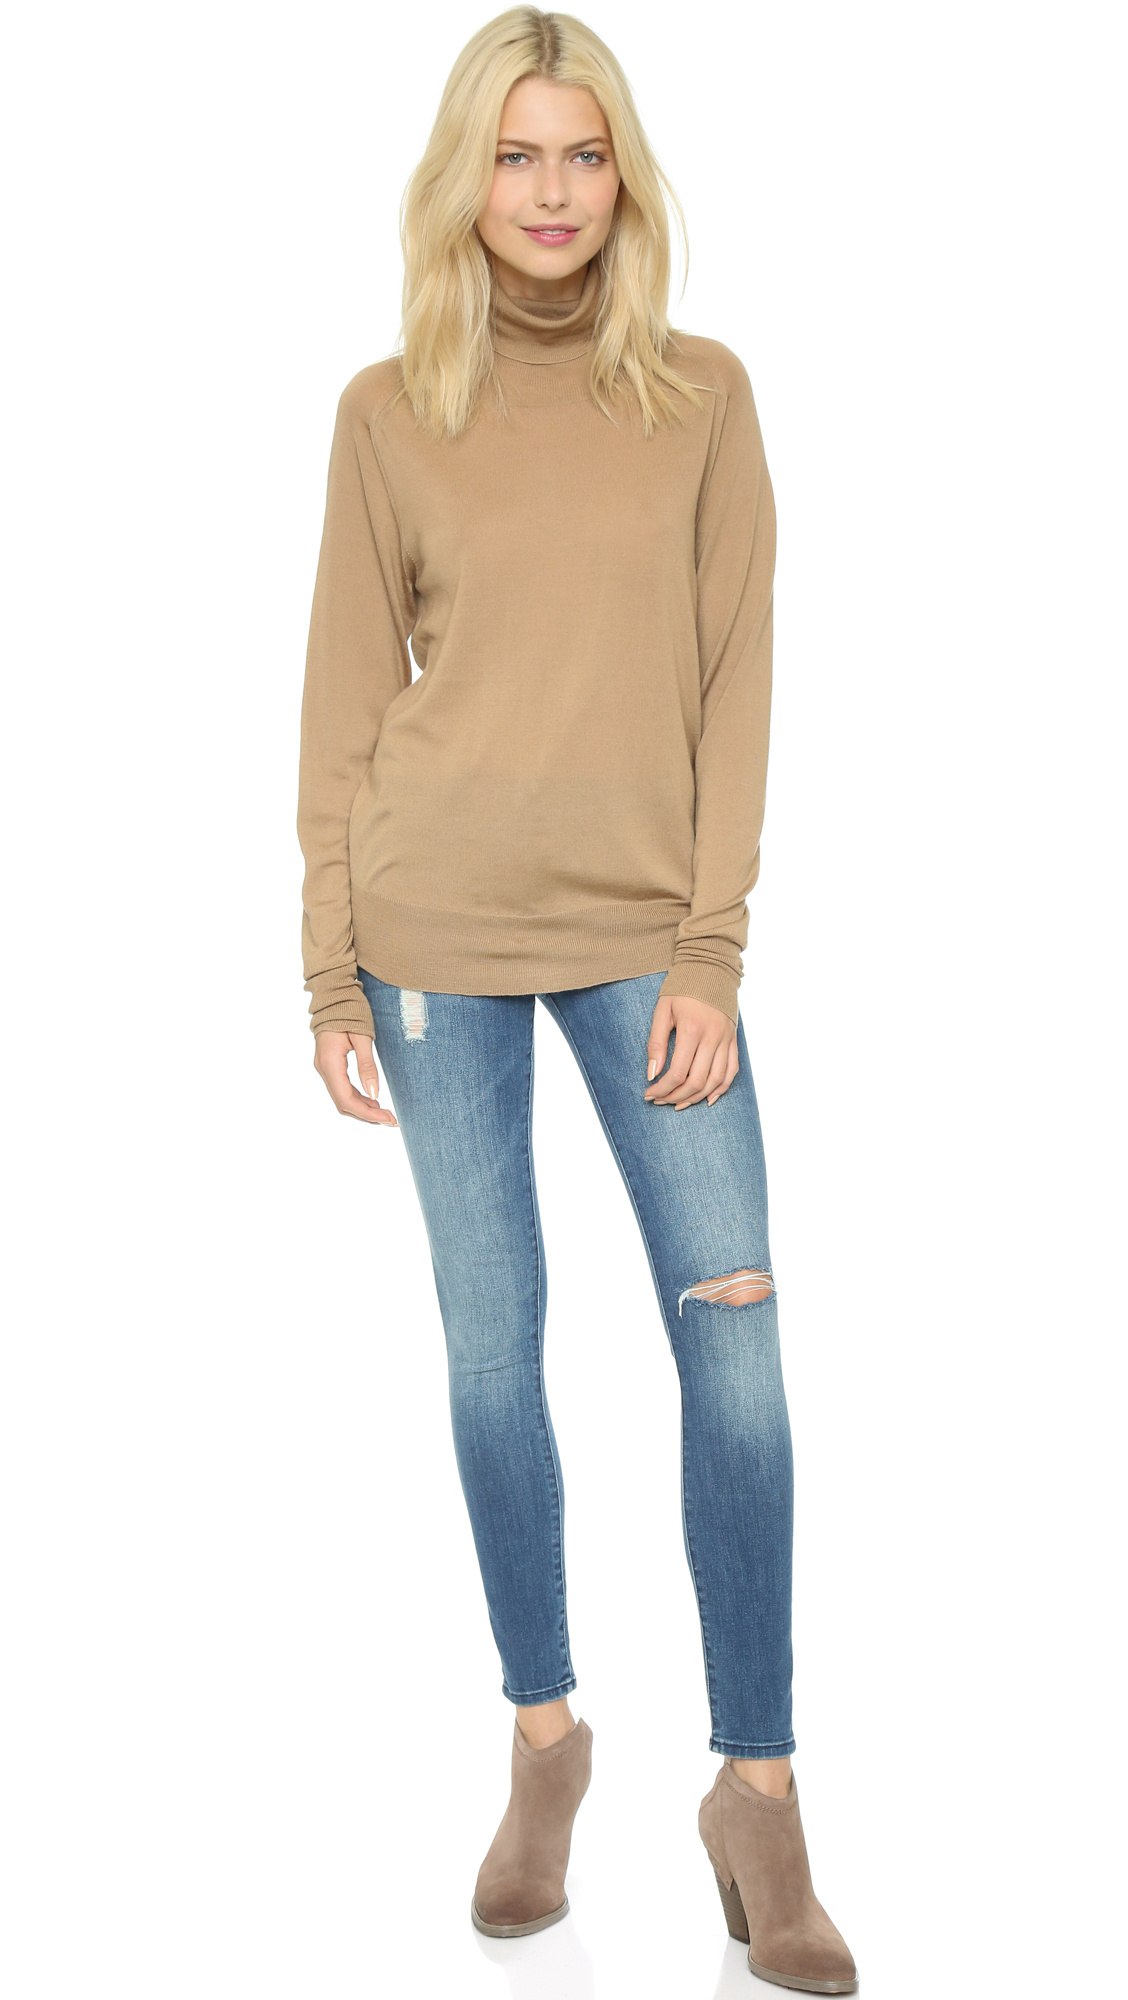 6397 Turtleneck Sweater in Brown | Lyst